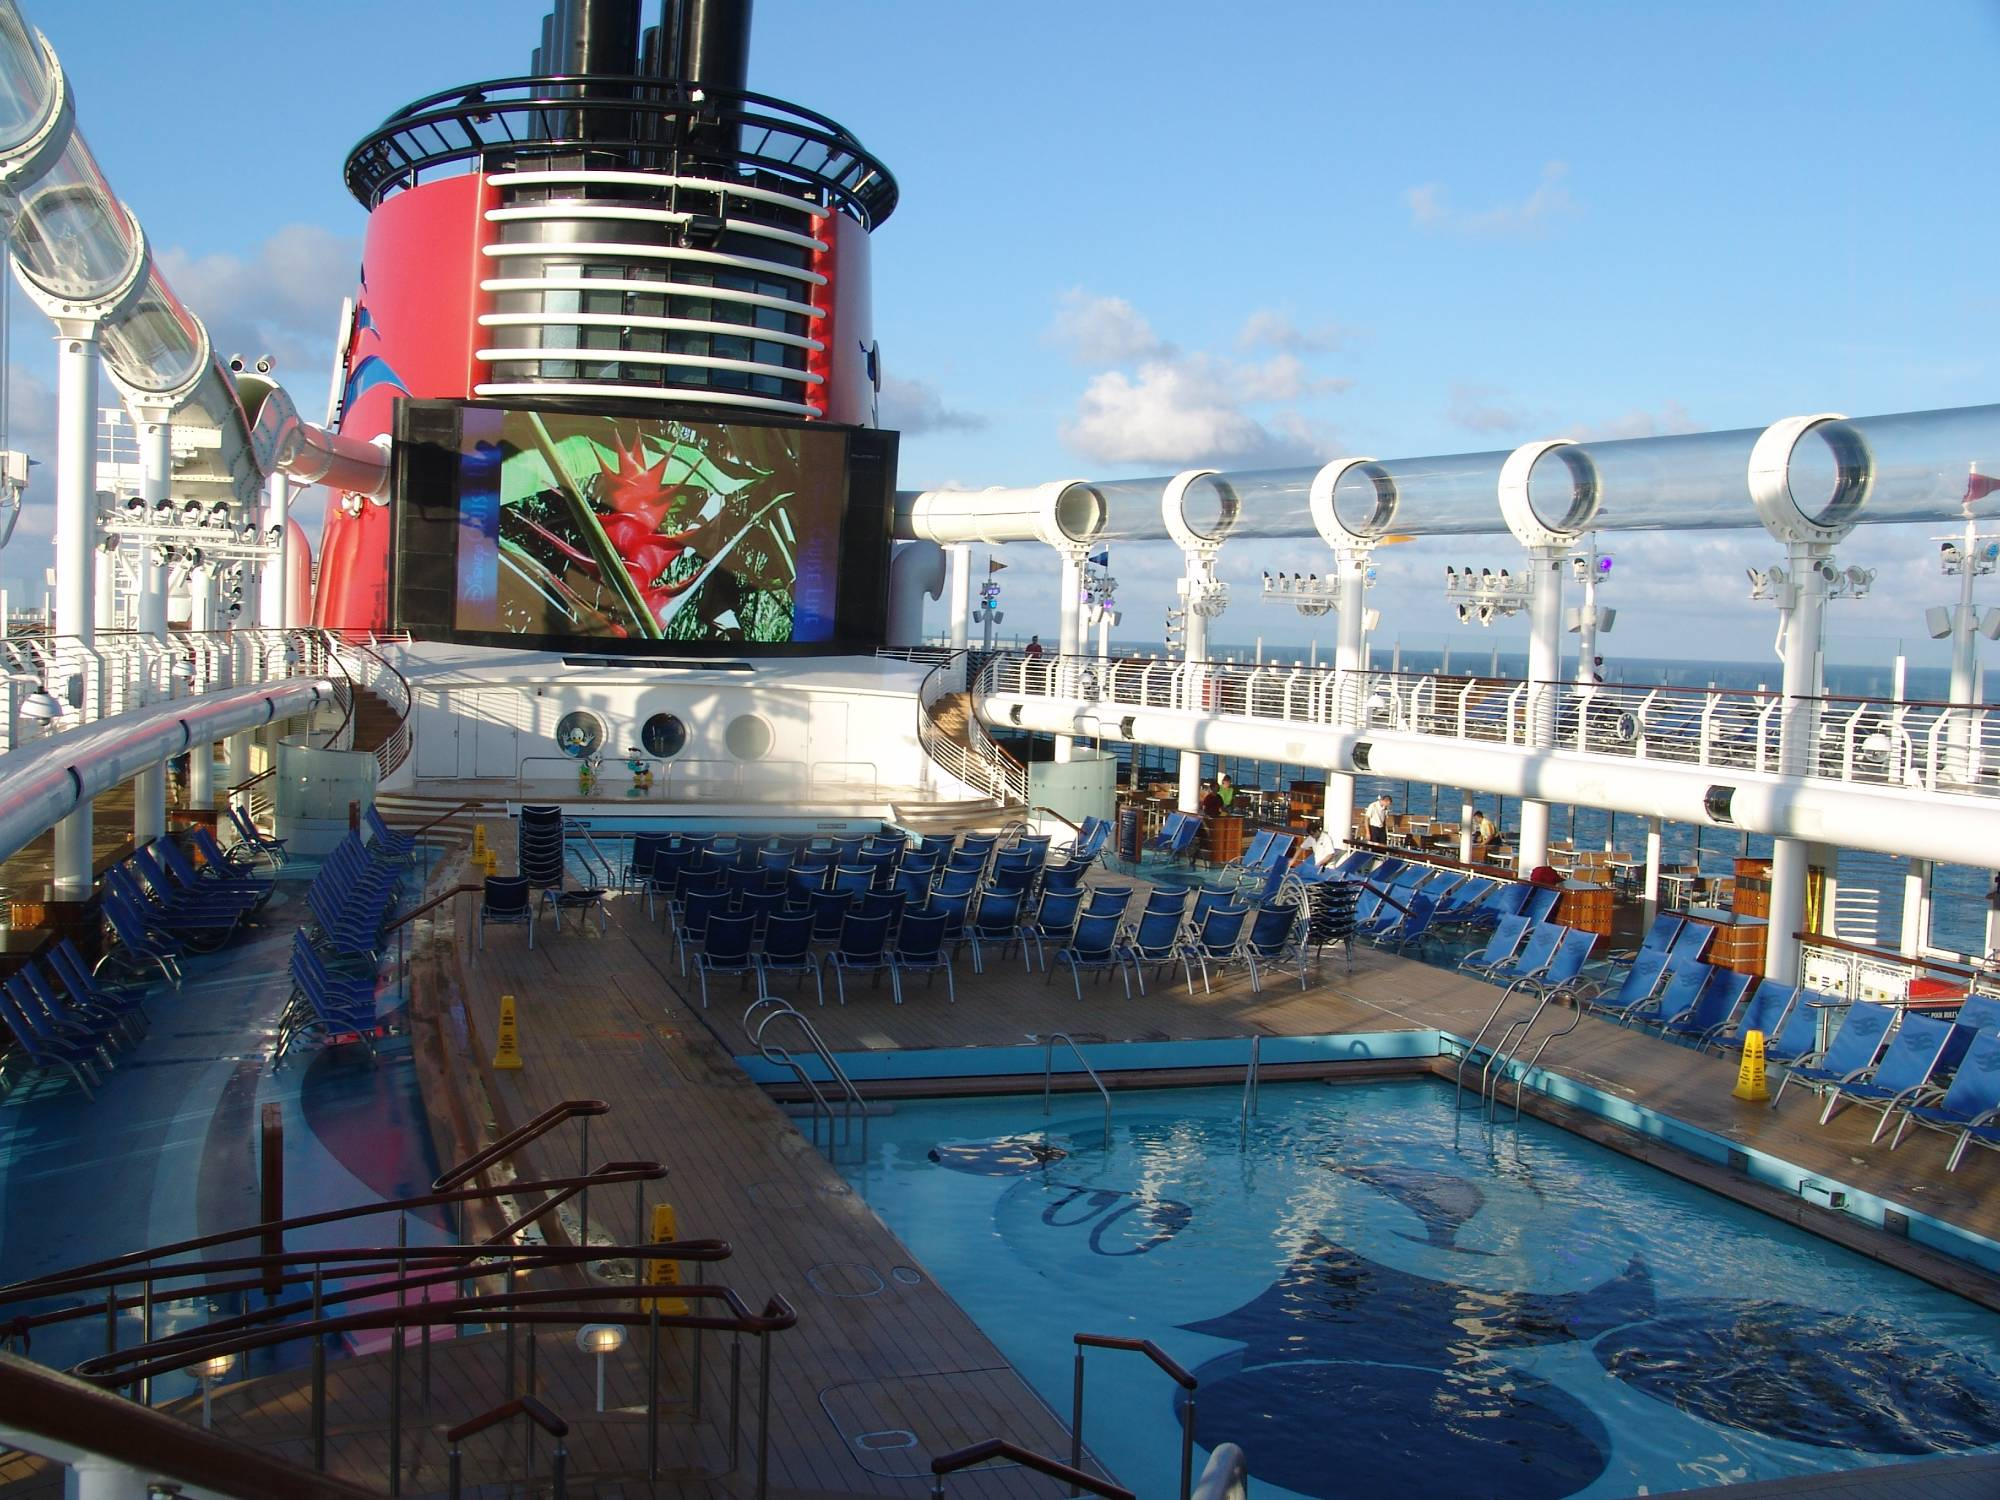 Learn how to keep your devices charged while onboard a Disney Cruise | PassPorter.com